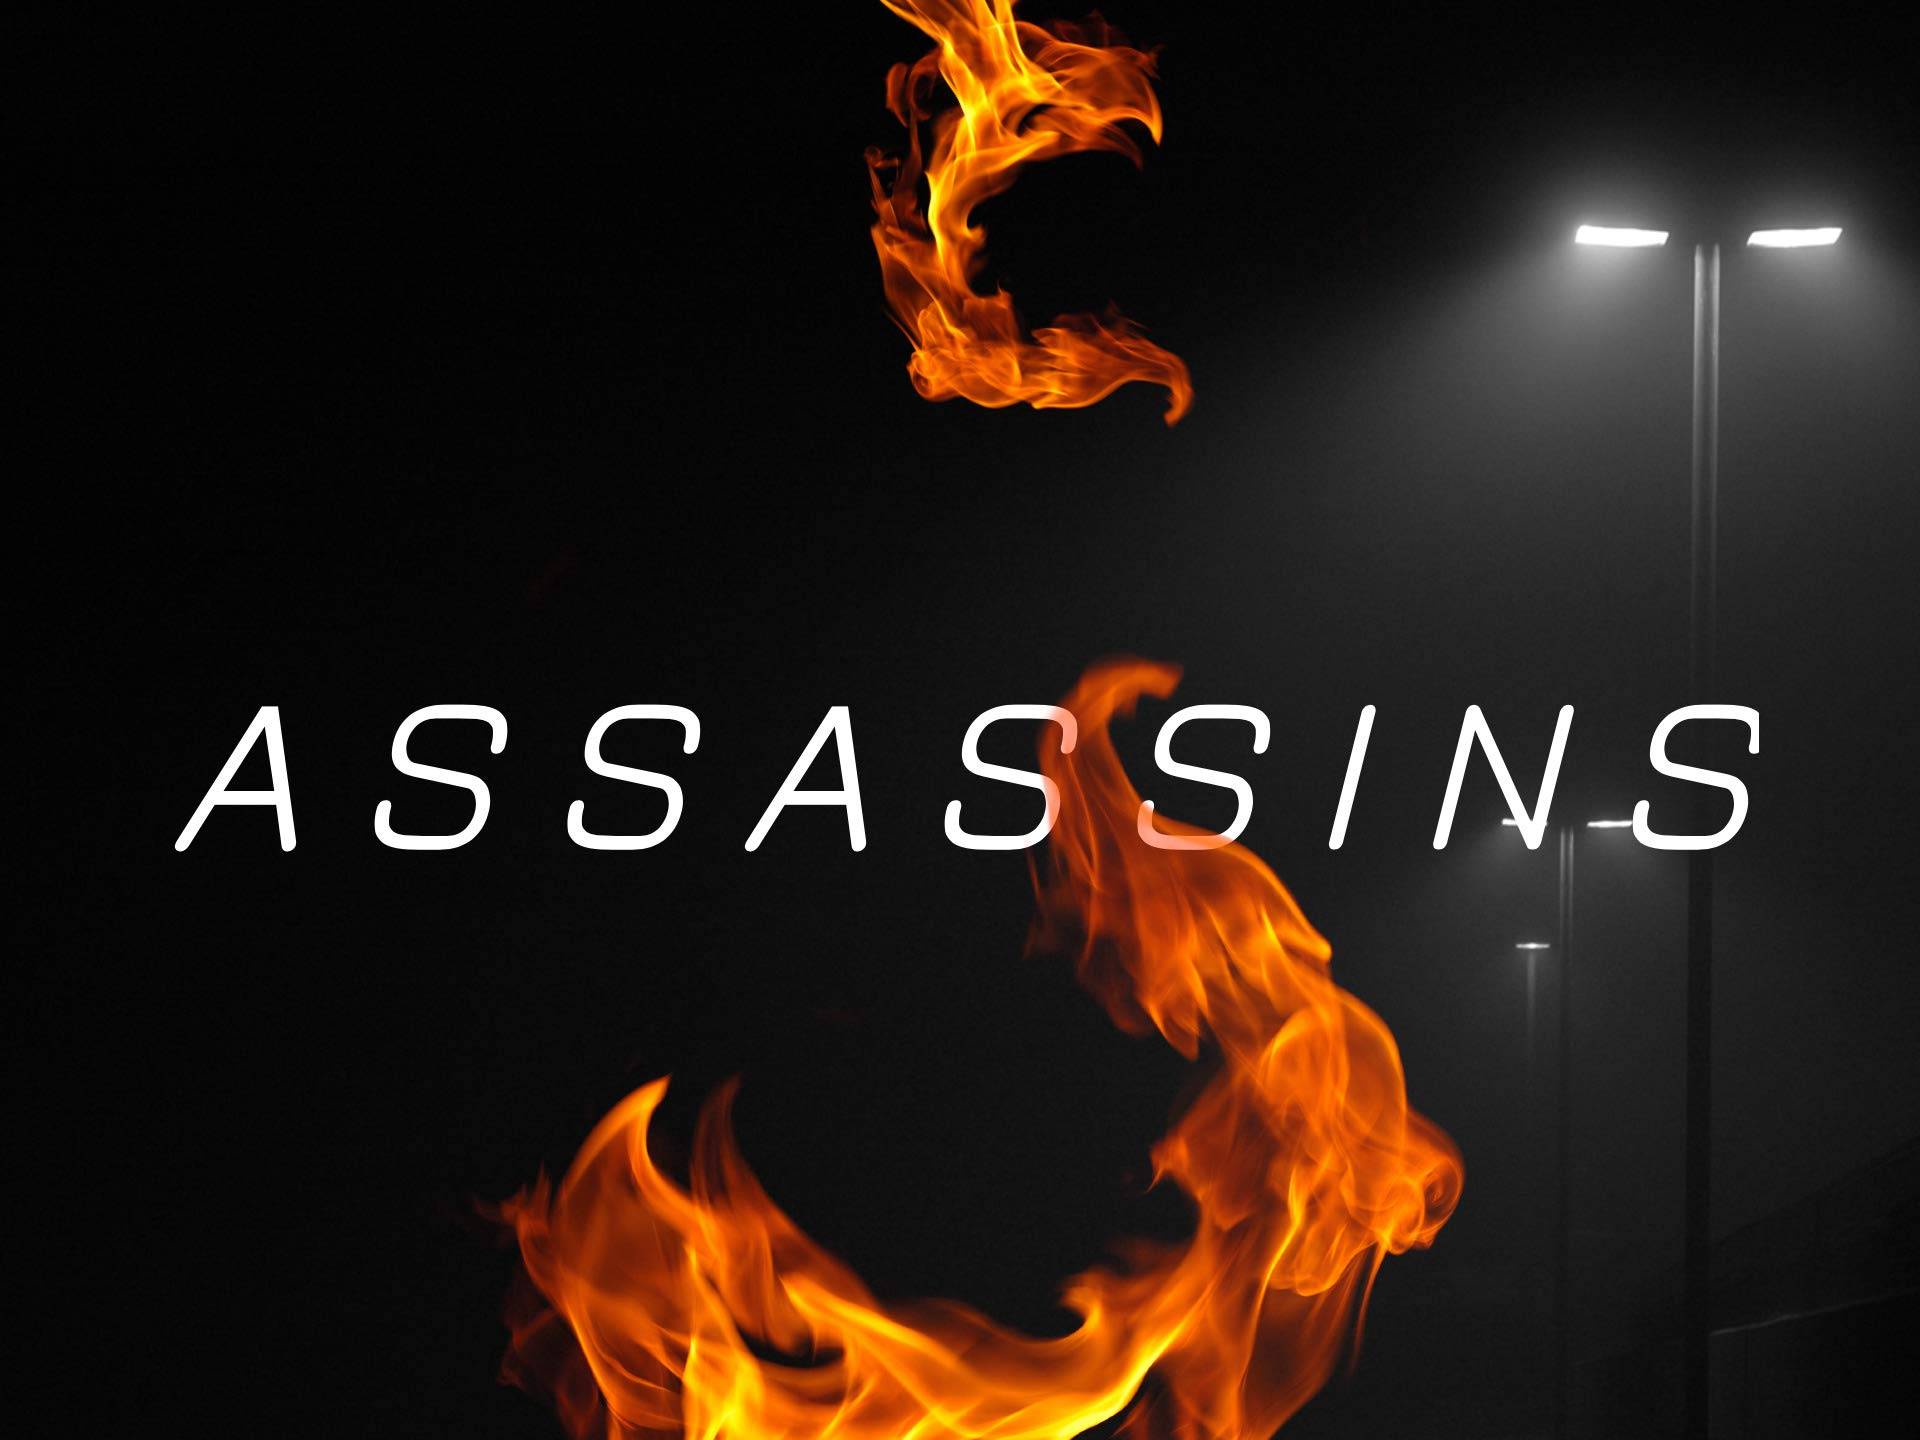 Assassins - Season 1